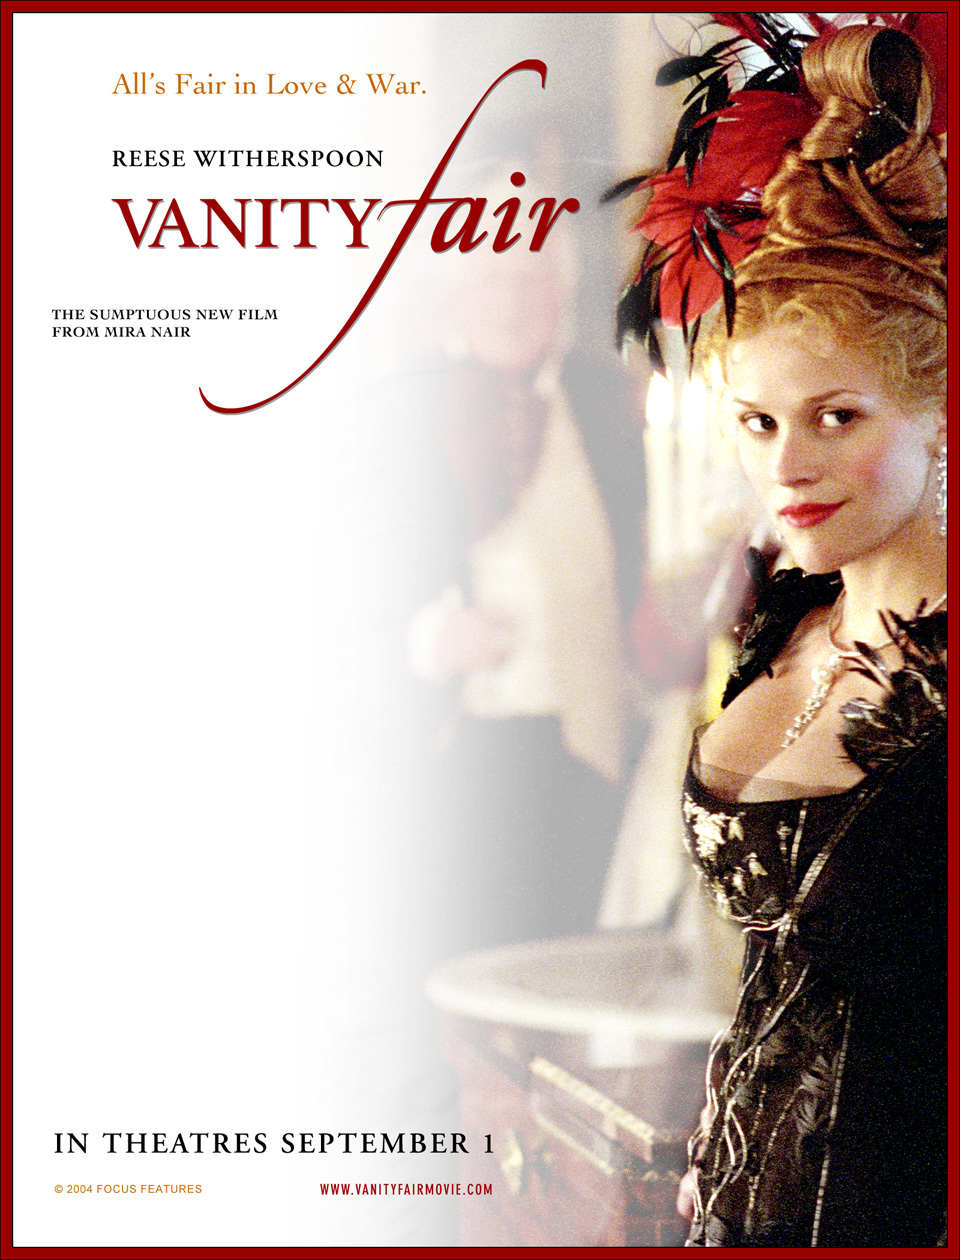 Vanity fair is an english novel by william makepeace thackeray which follows the lives of becky sharp and emmy sedley